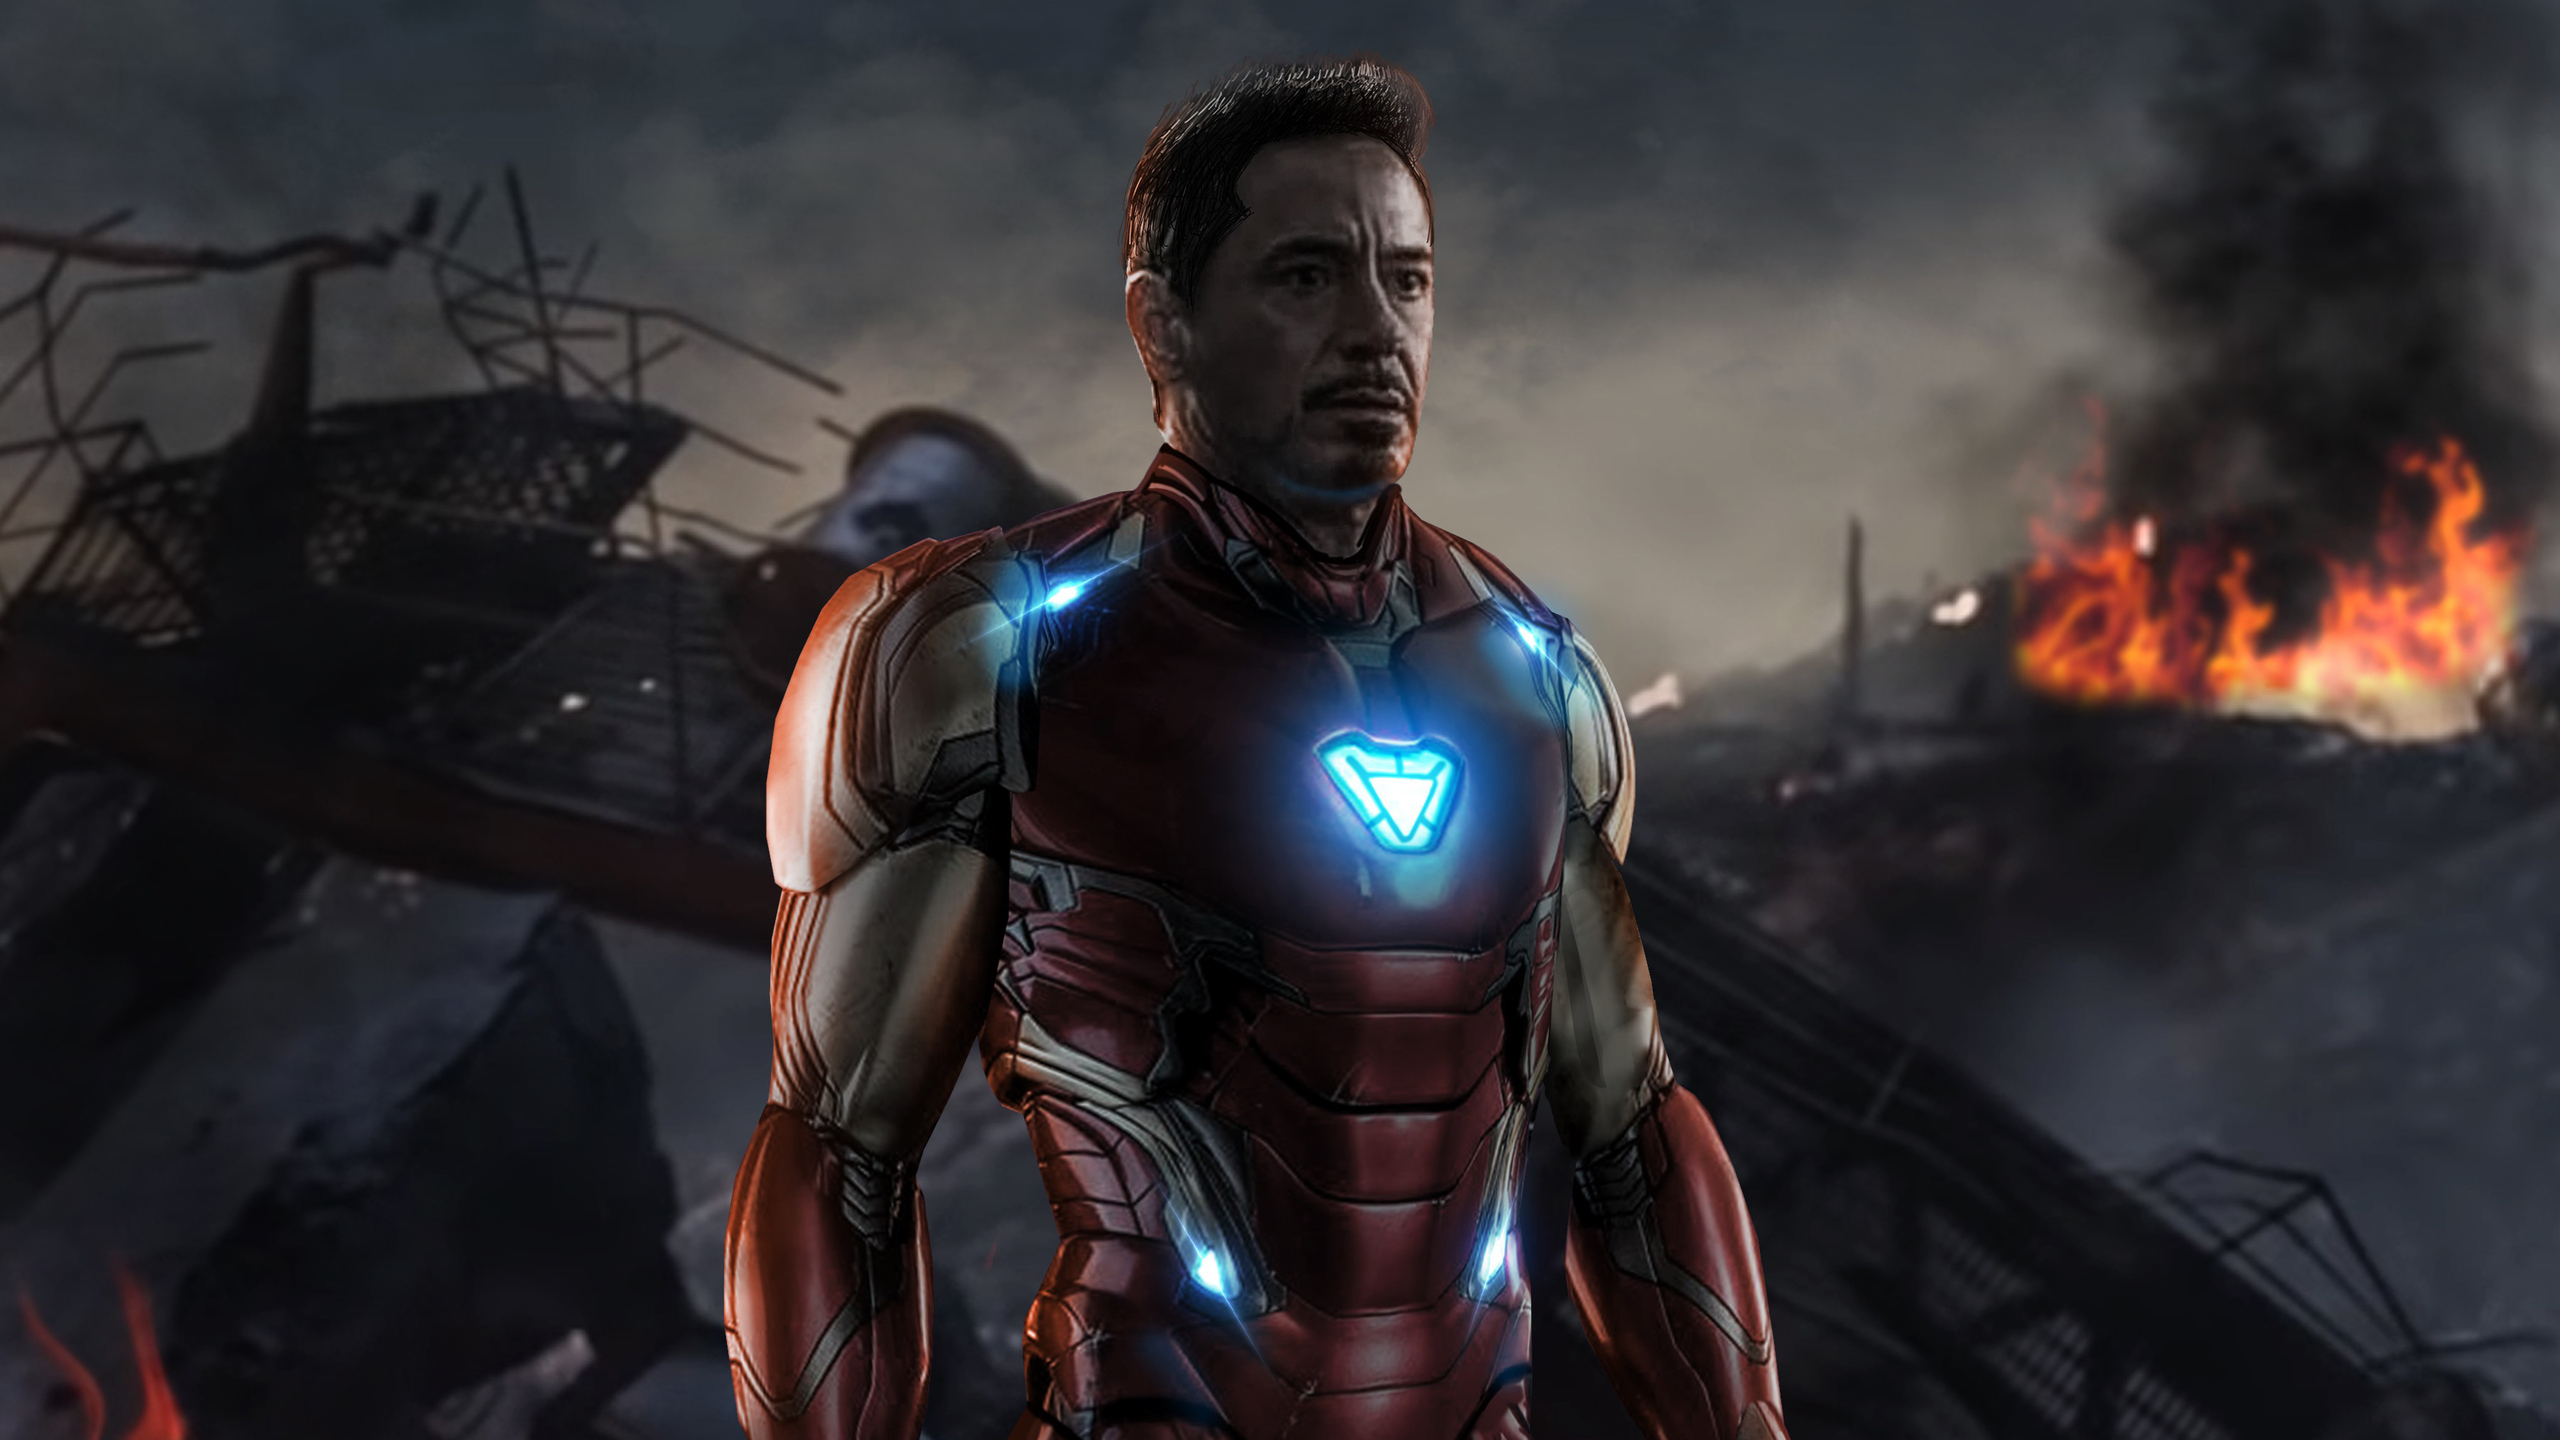 2560x1440 Iron Man Avengers Endgame 1440p Resolution Hd 4k